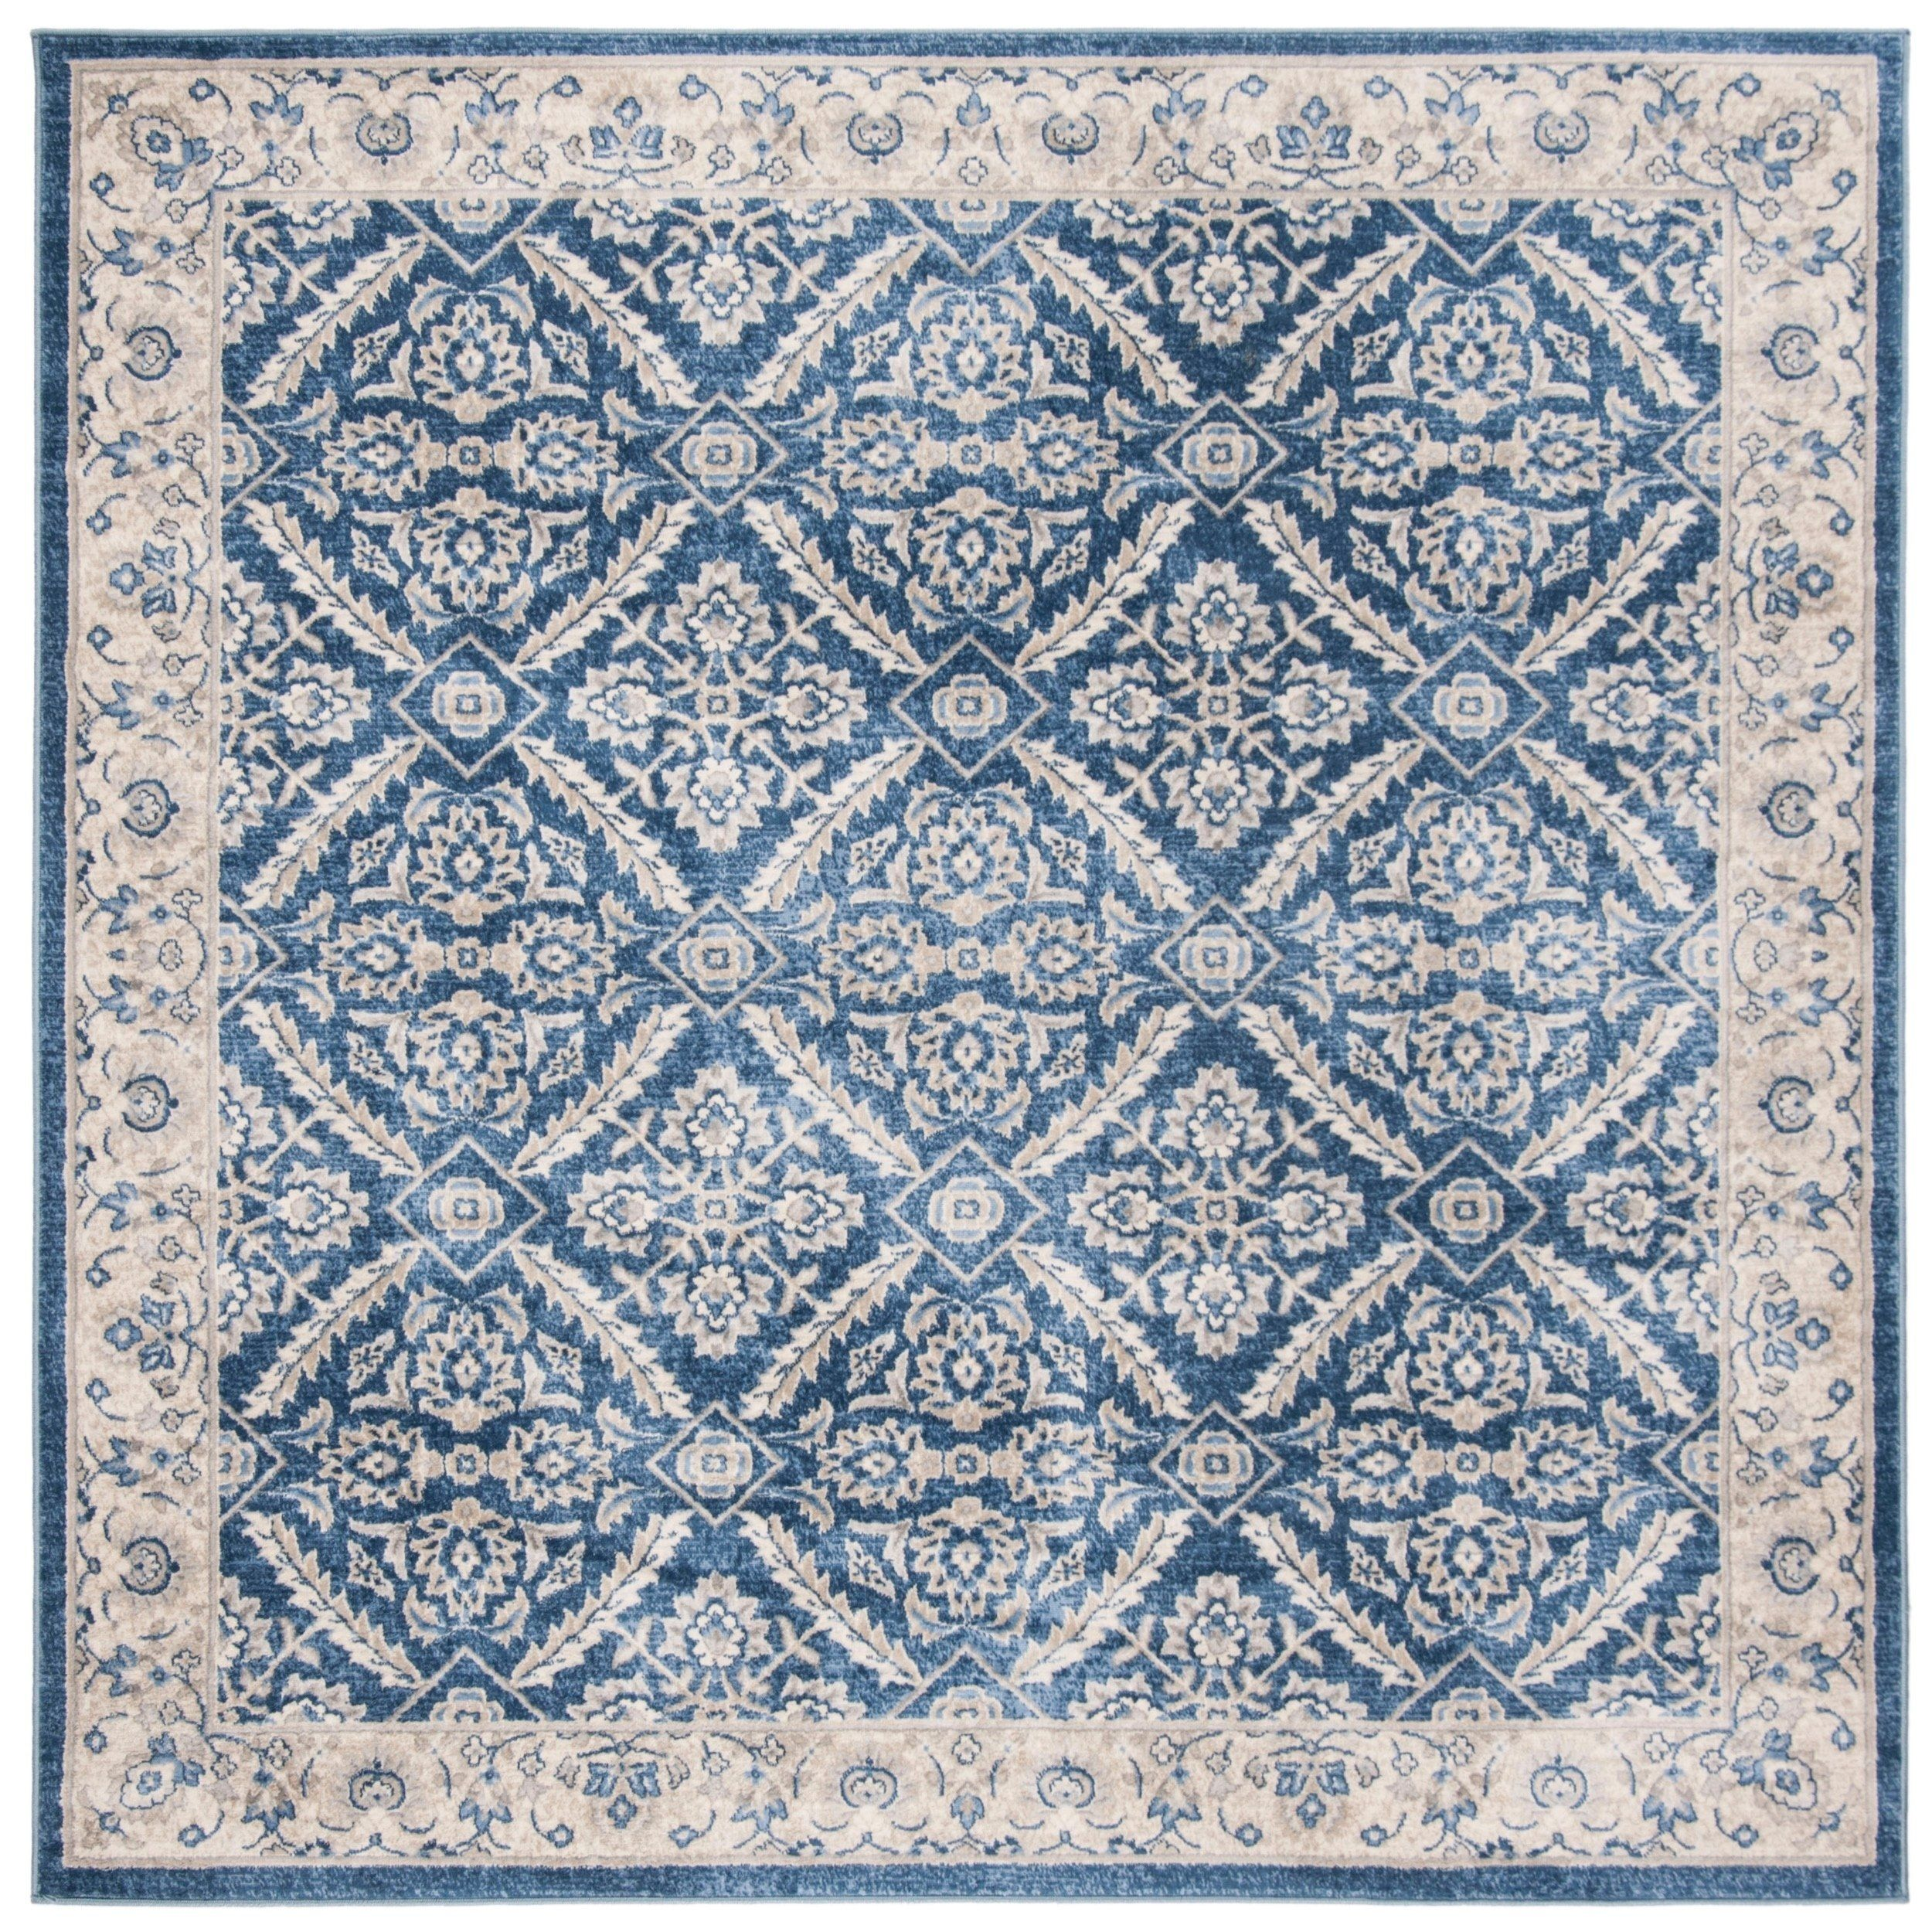 Safavieh Brentwood Vivien Navy Cream Rug 6 7 X 6 7 Square 6 7 X 6 7 Square Navy Creme Blue P With Images Floral Medallion Rug Area Rugs Country Area Rugs